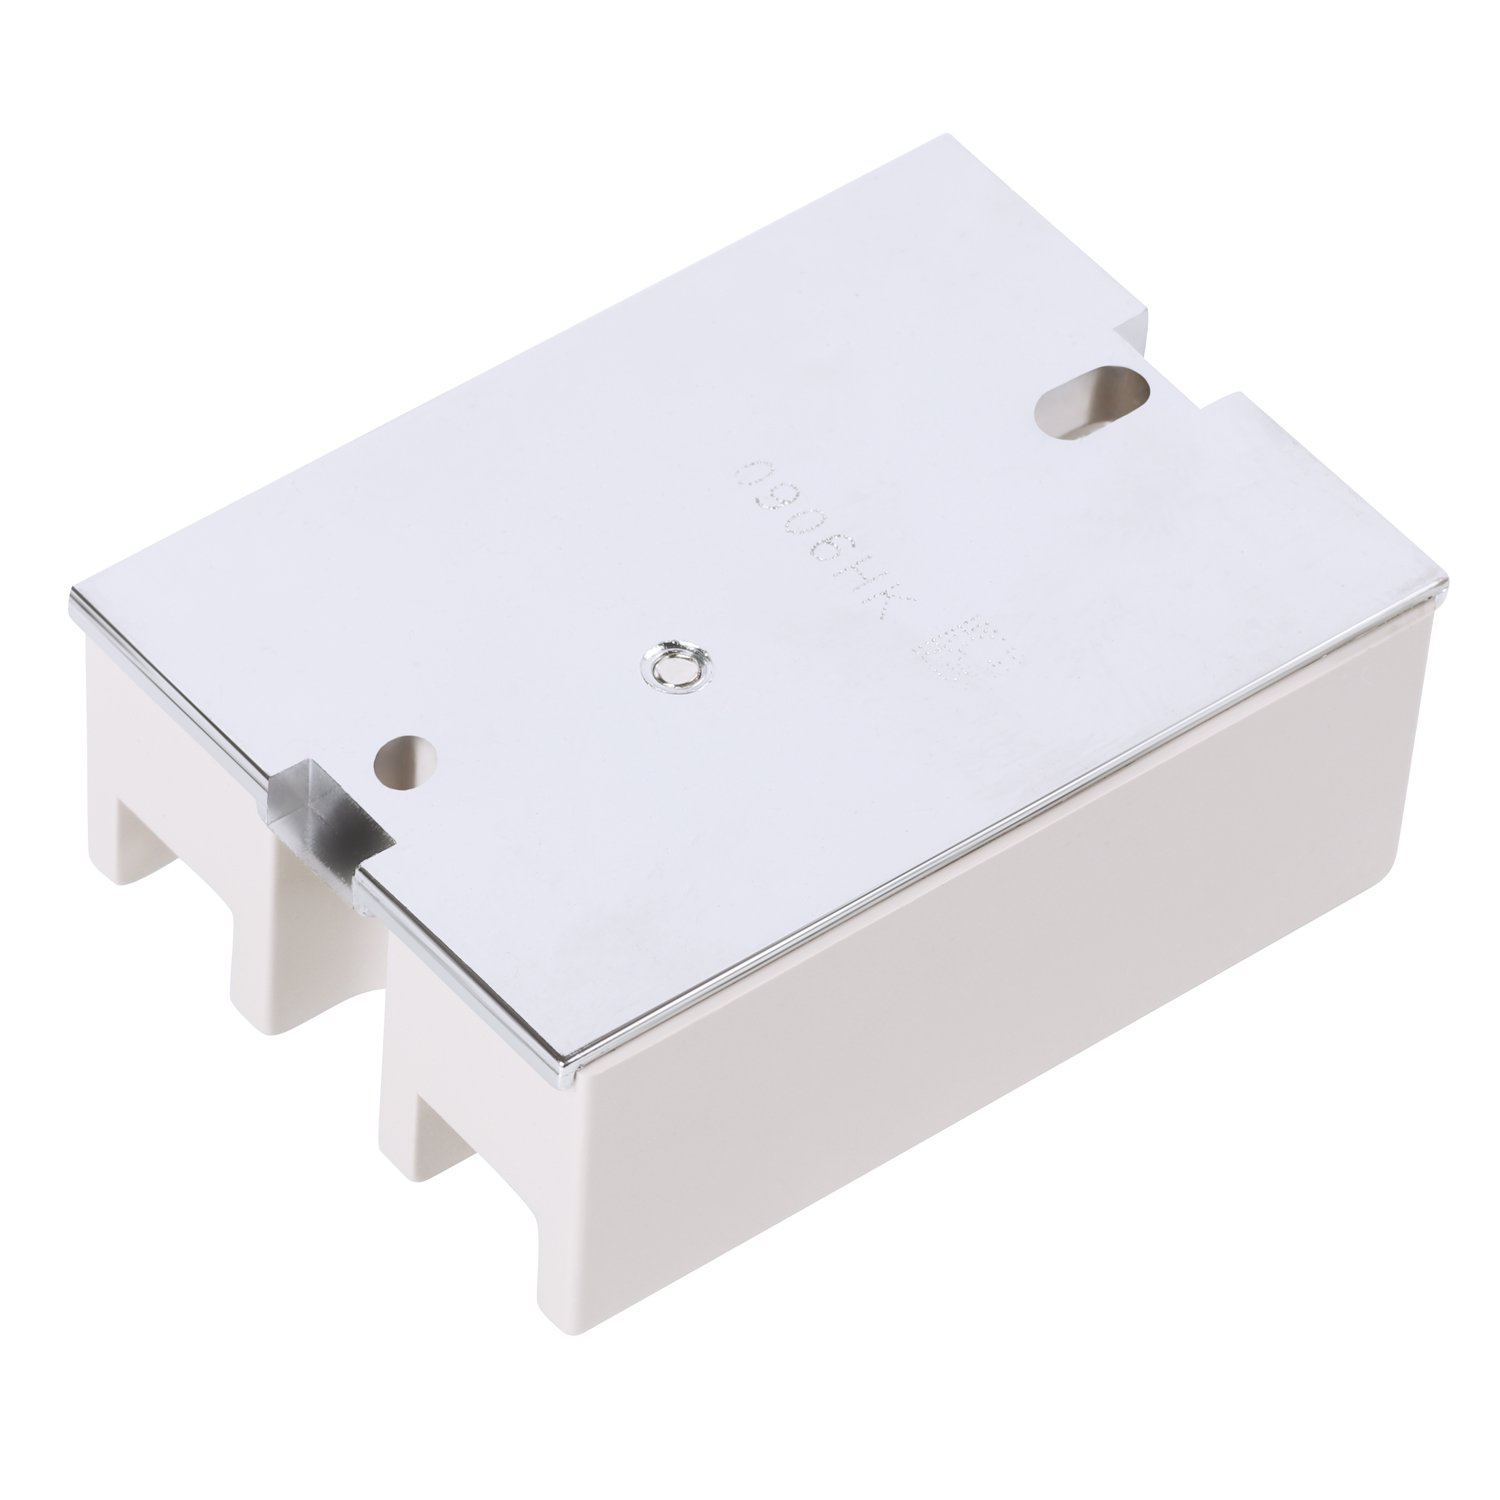 Mysweety 3pcs Ssr 10da Solid State Relay Single Phase Semi Conductor Medium Power Acsolid Input 3 32v Dc Output 24 380v Ac Industrial Scientific